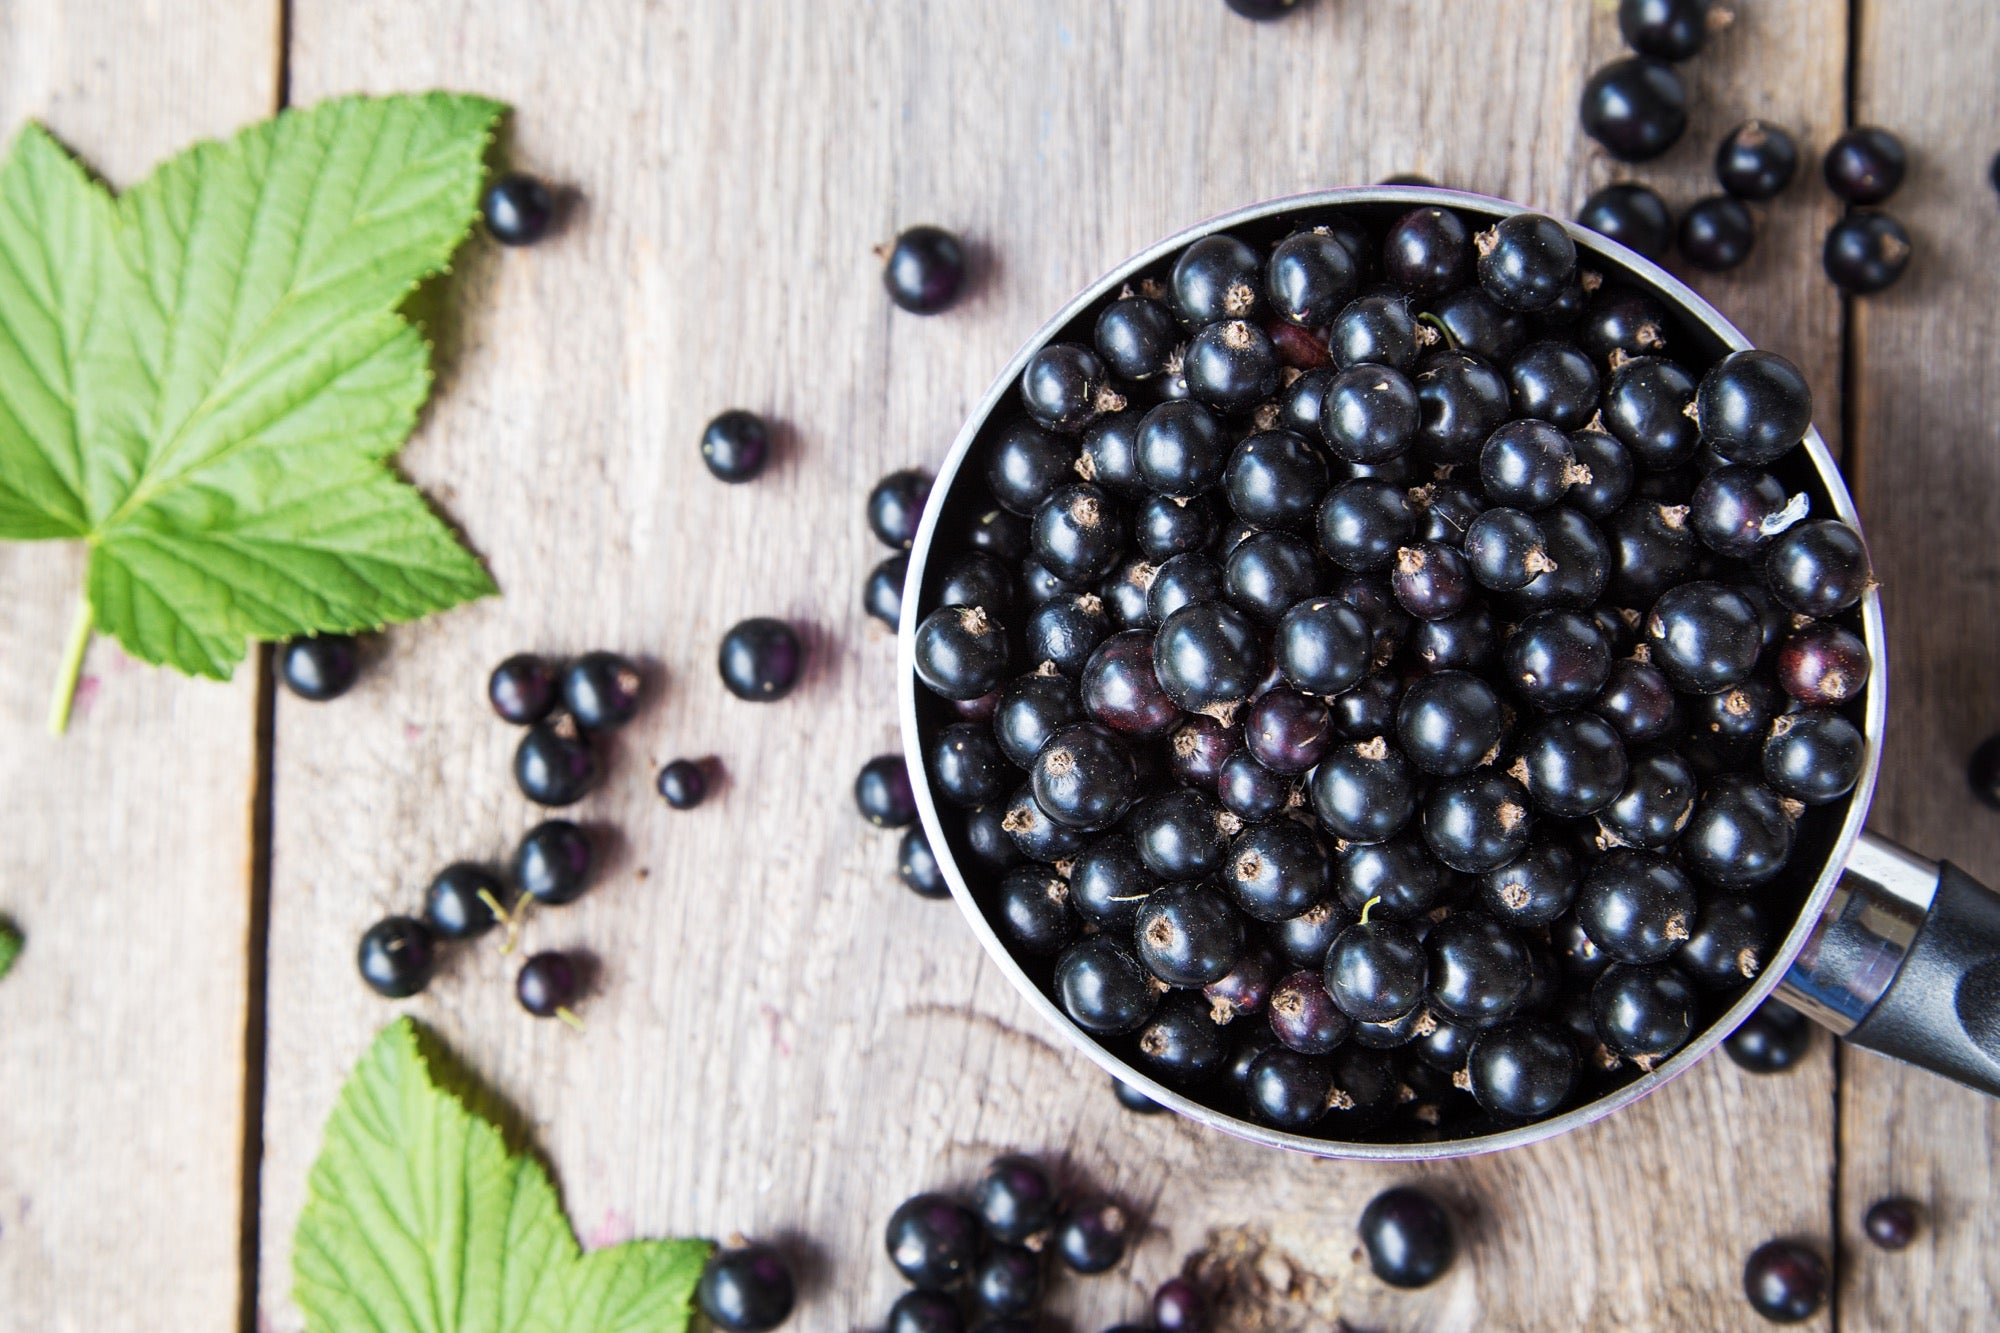 Why we love blackcurrants